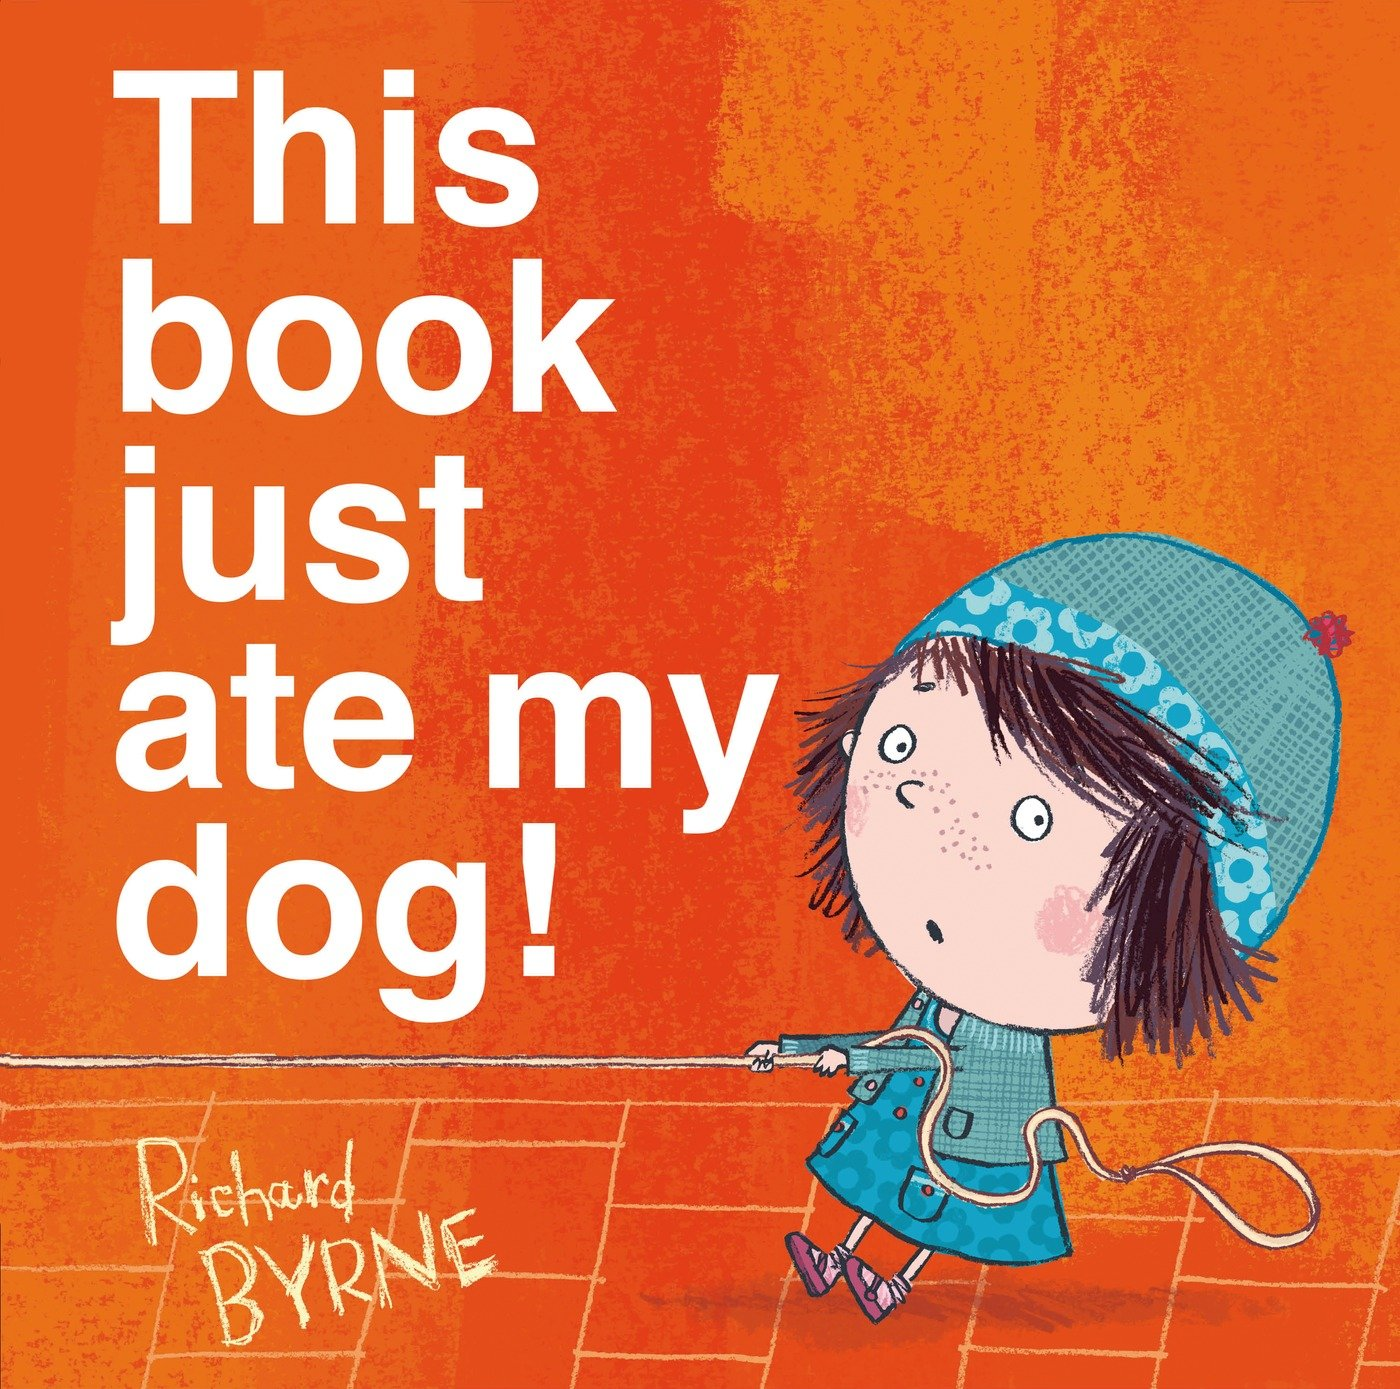 Image result for this book just ate my dog